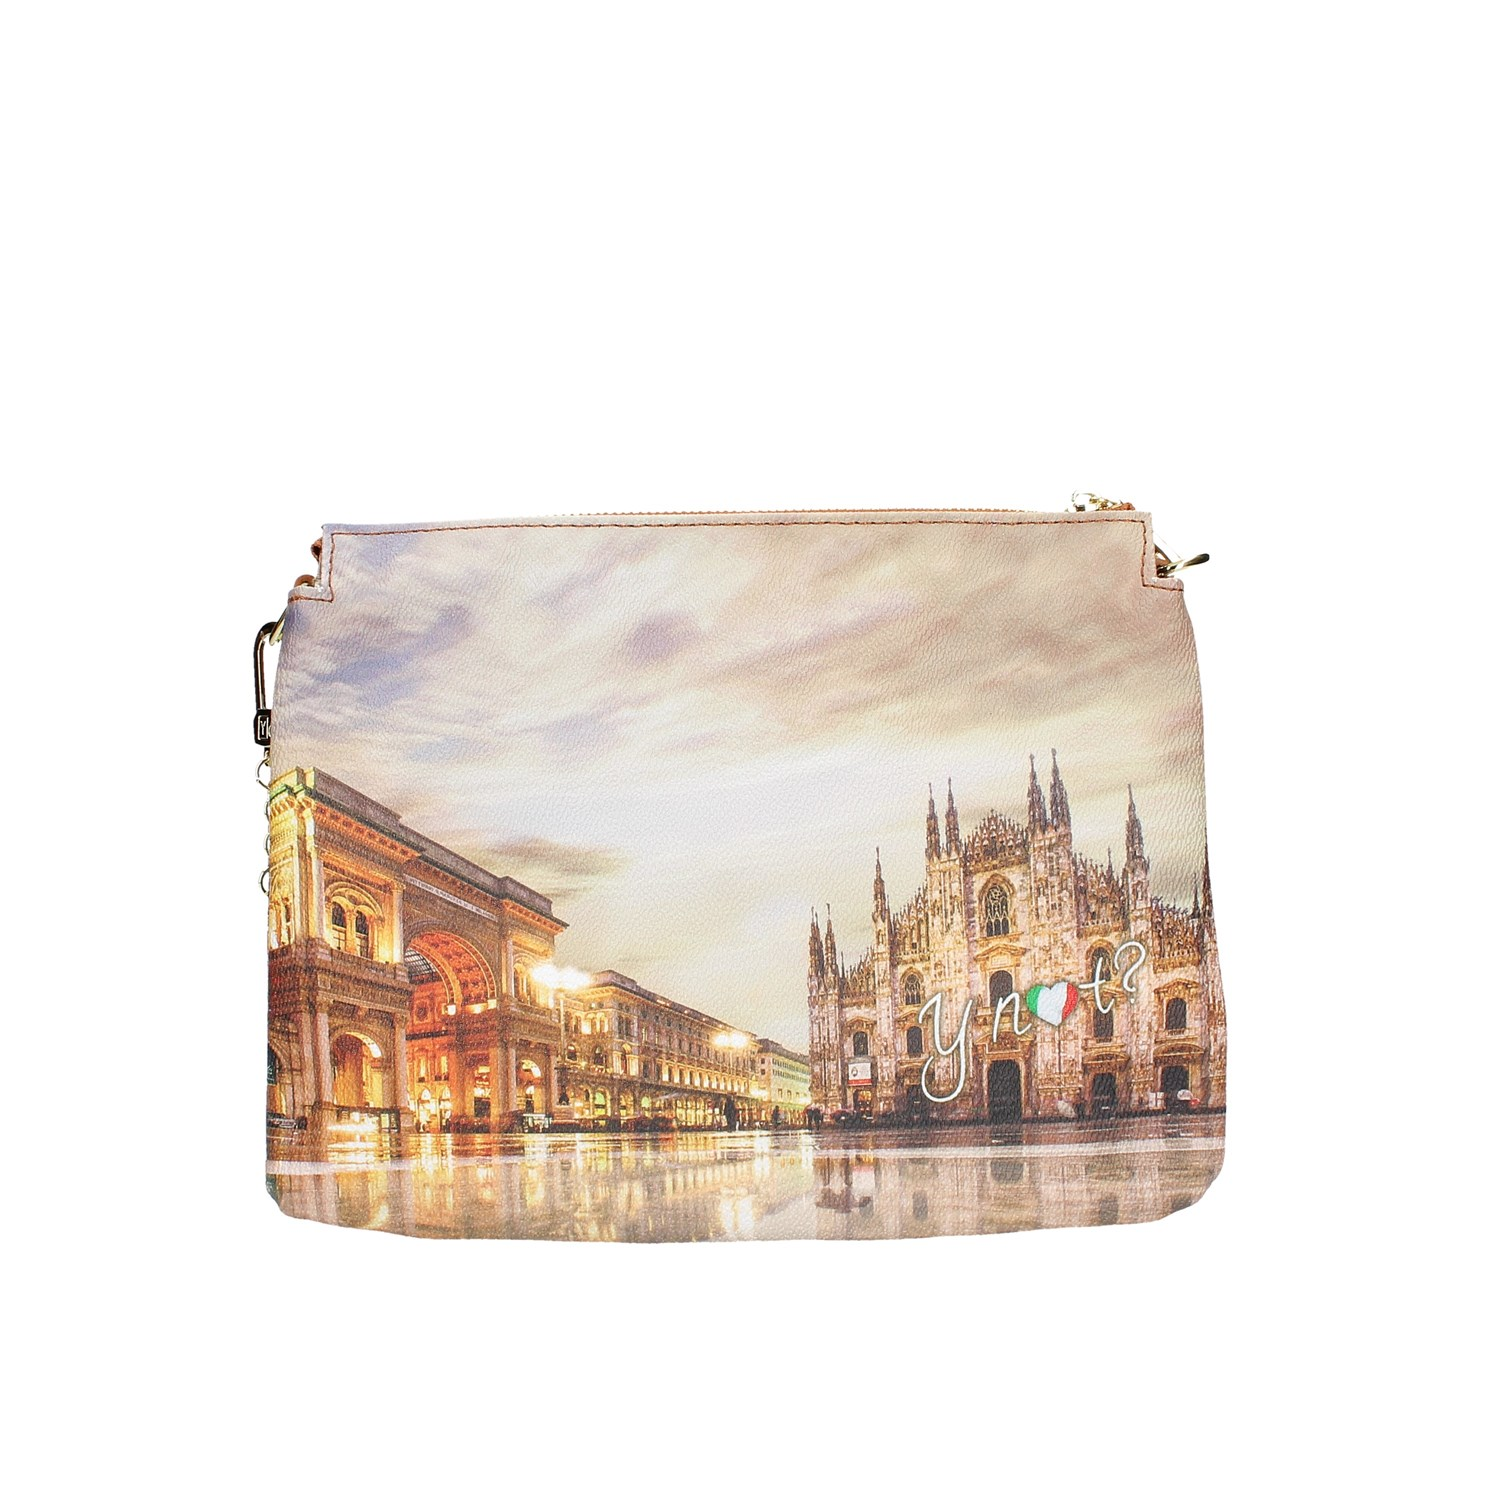 40bd3b2195 Ynot? Tracolla Milano Sunset | Tracolla Donna Yes Bag | Stage ...